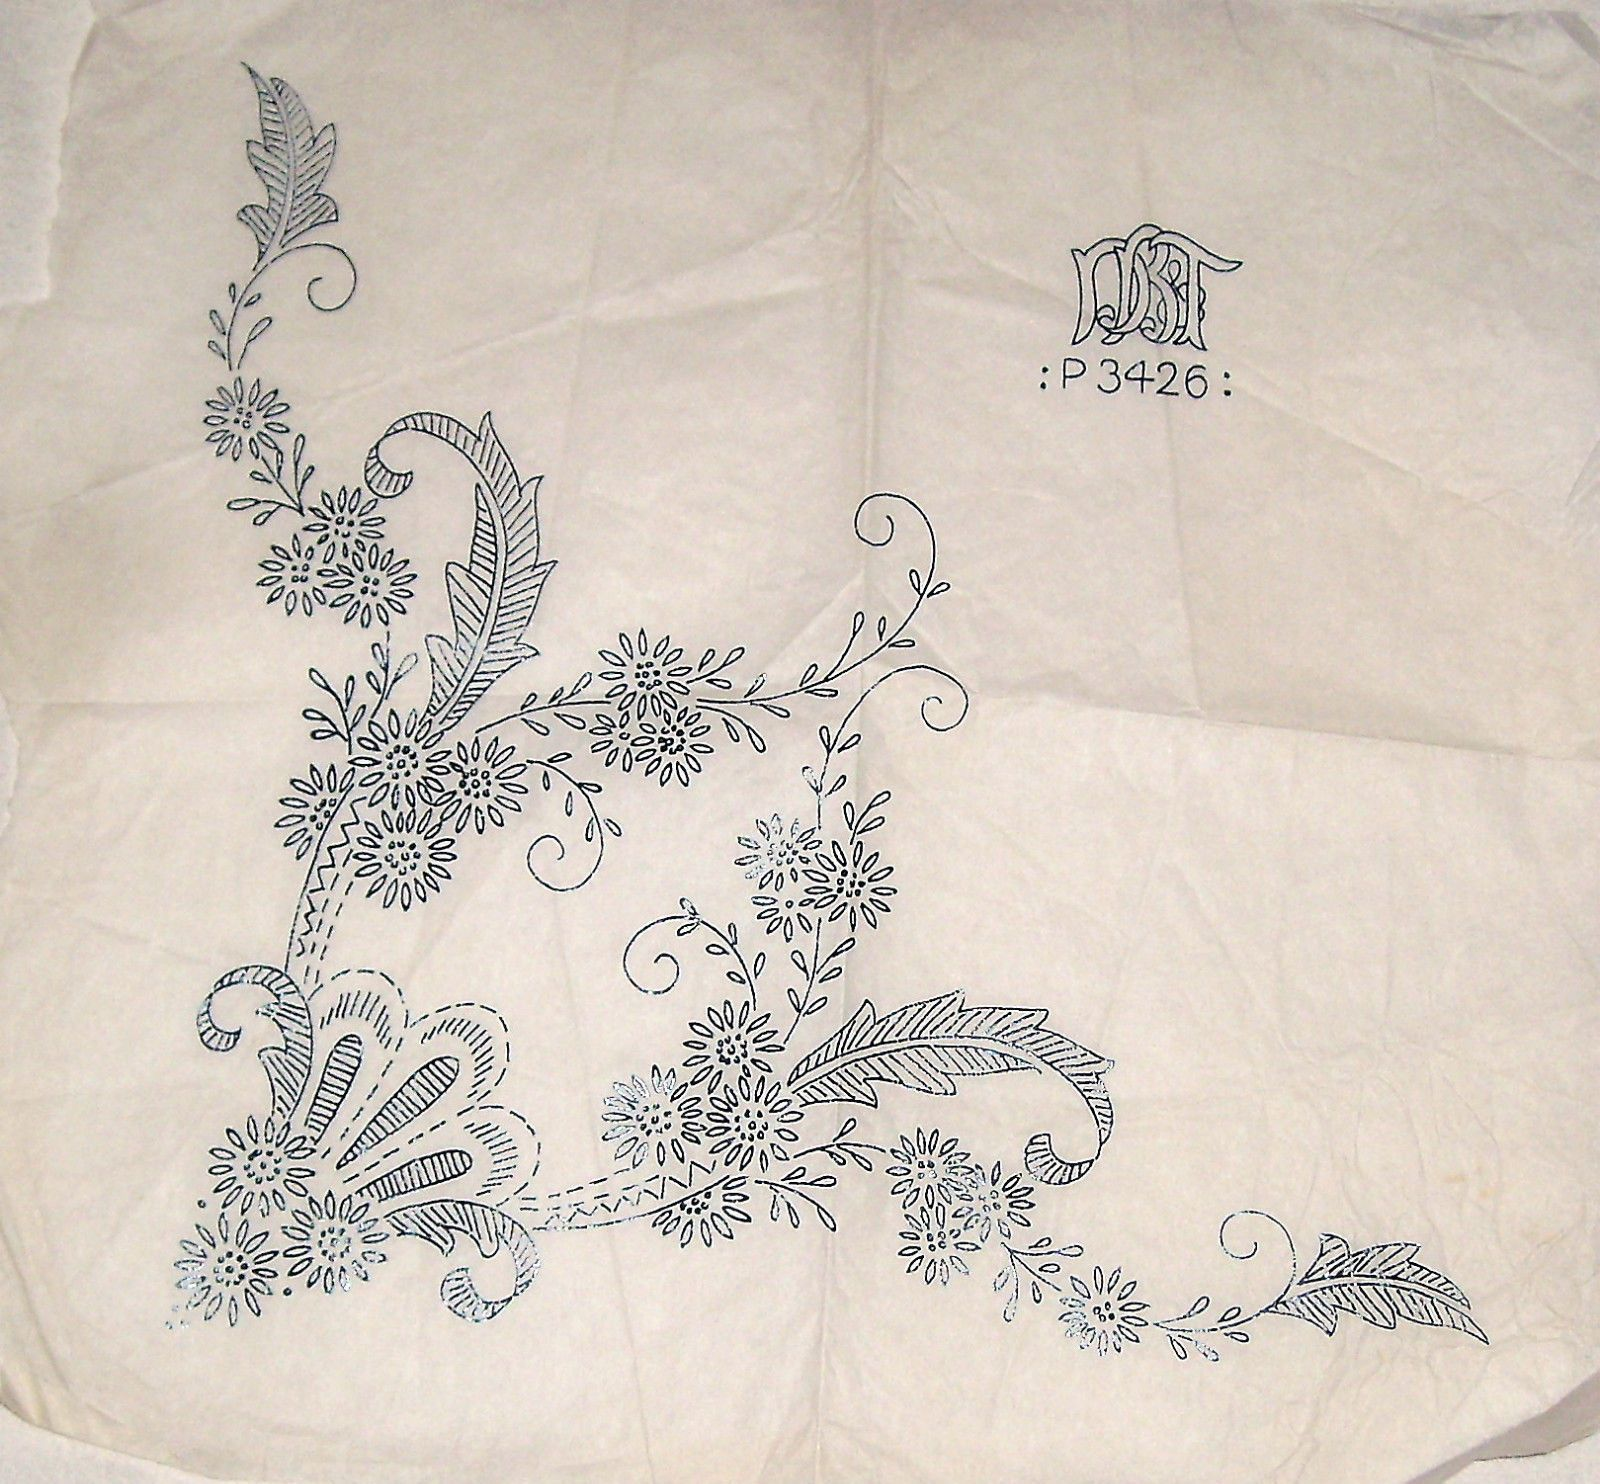 Vintage boynton embroidery transfer dandelion flowers ornate vintage boynton embroidery transfer dandelion flowers ornate jacobean spray in crafts embroidery patterns bankloansurffo Gallery